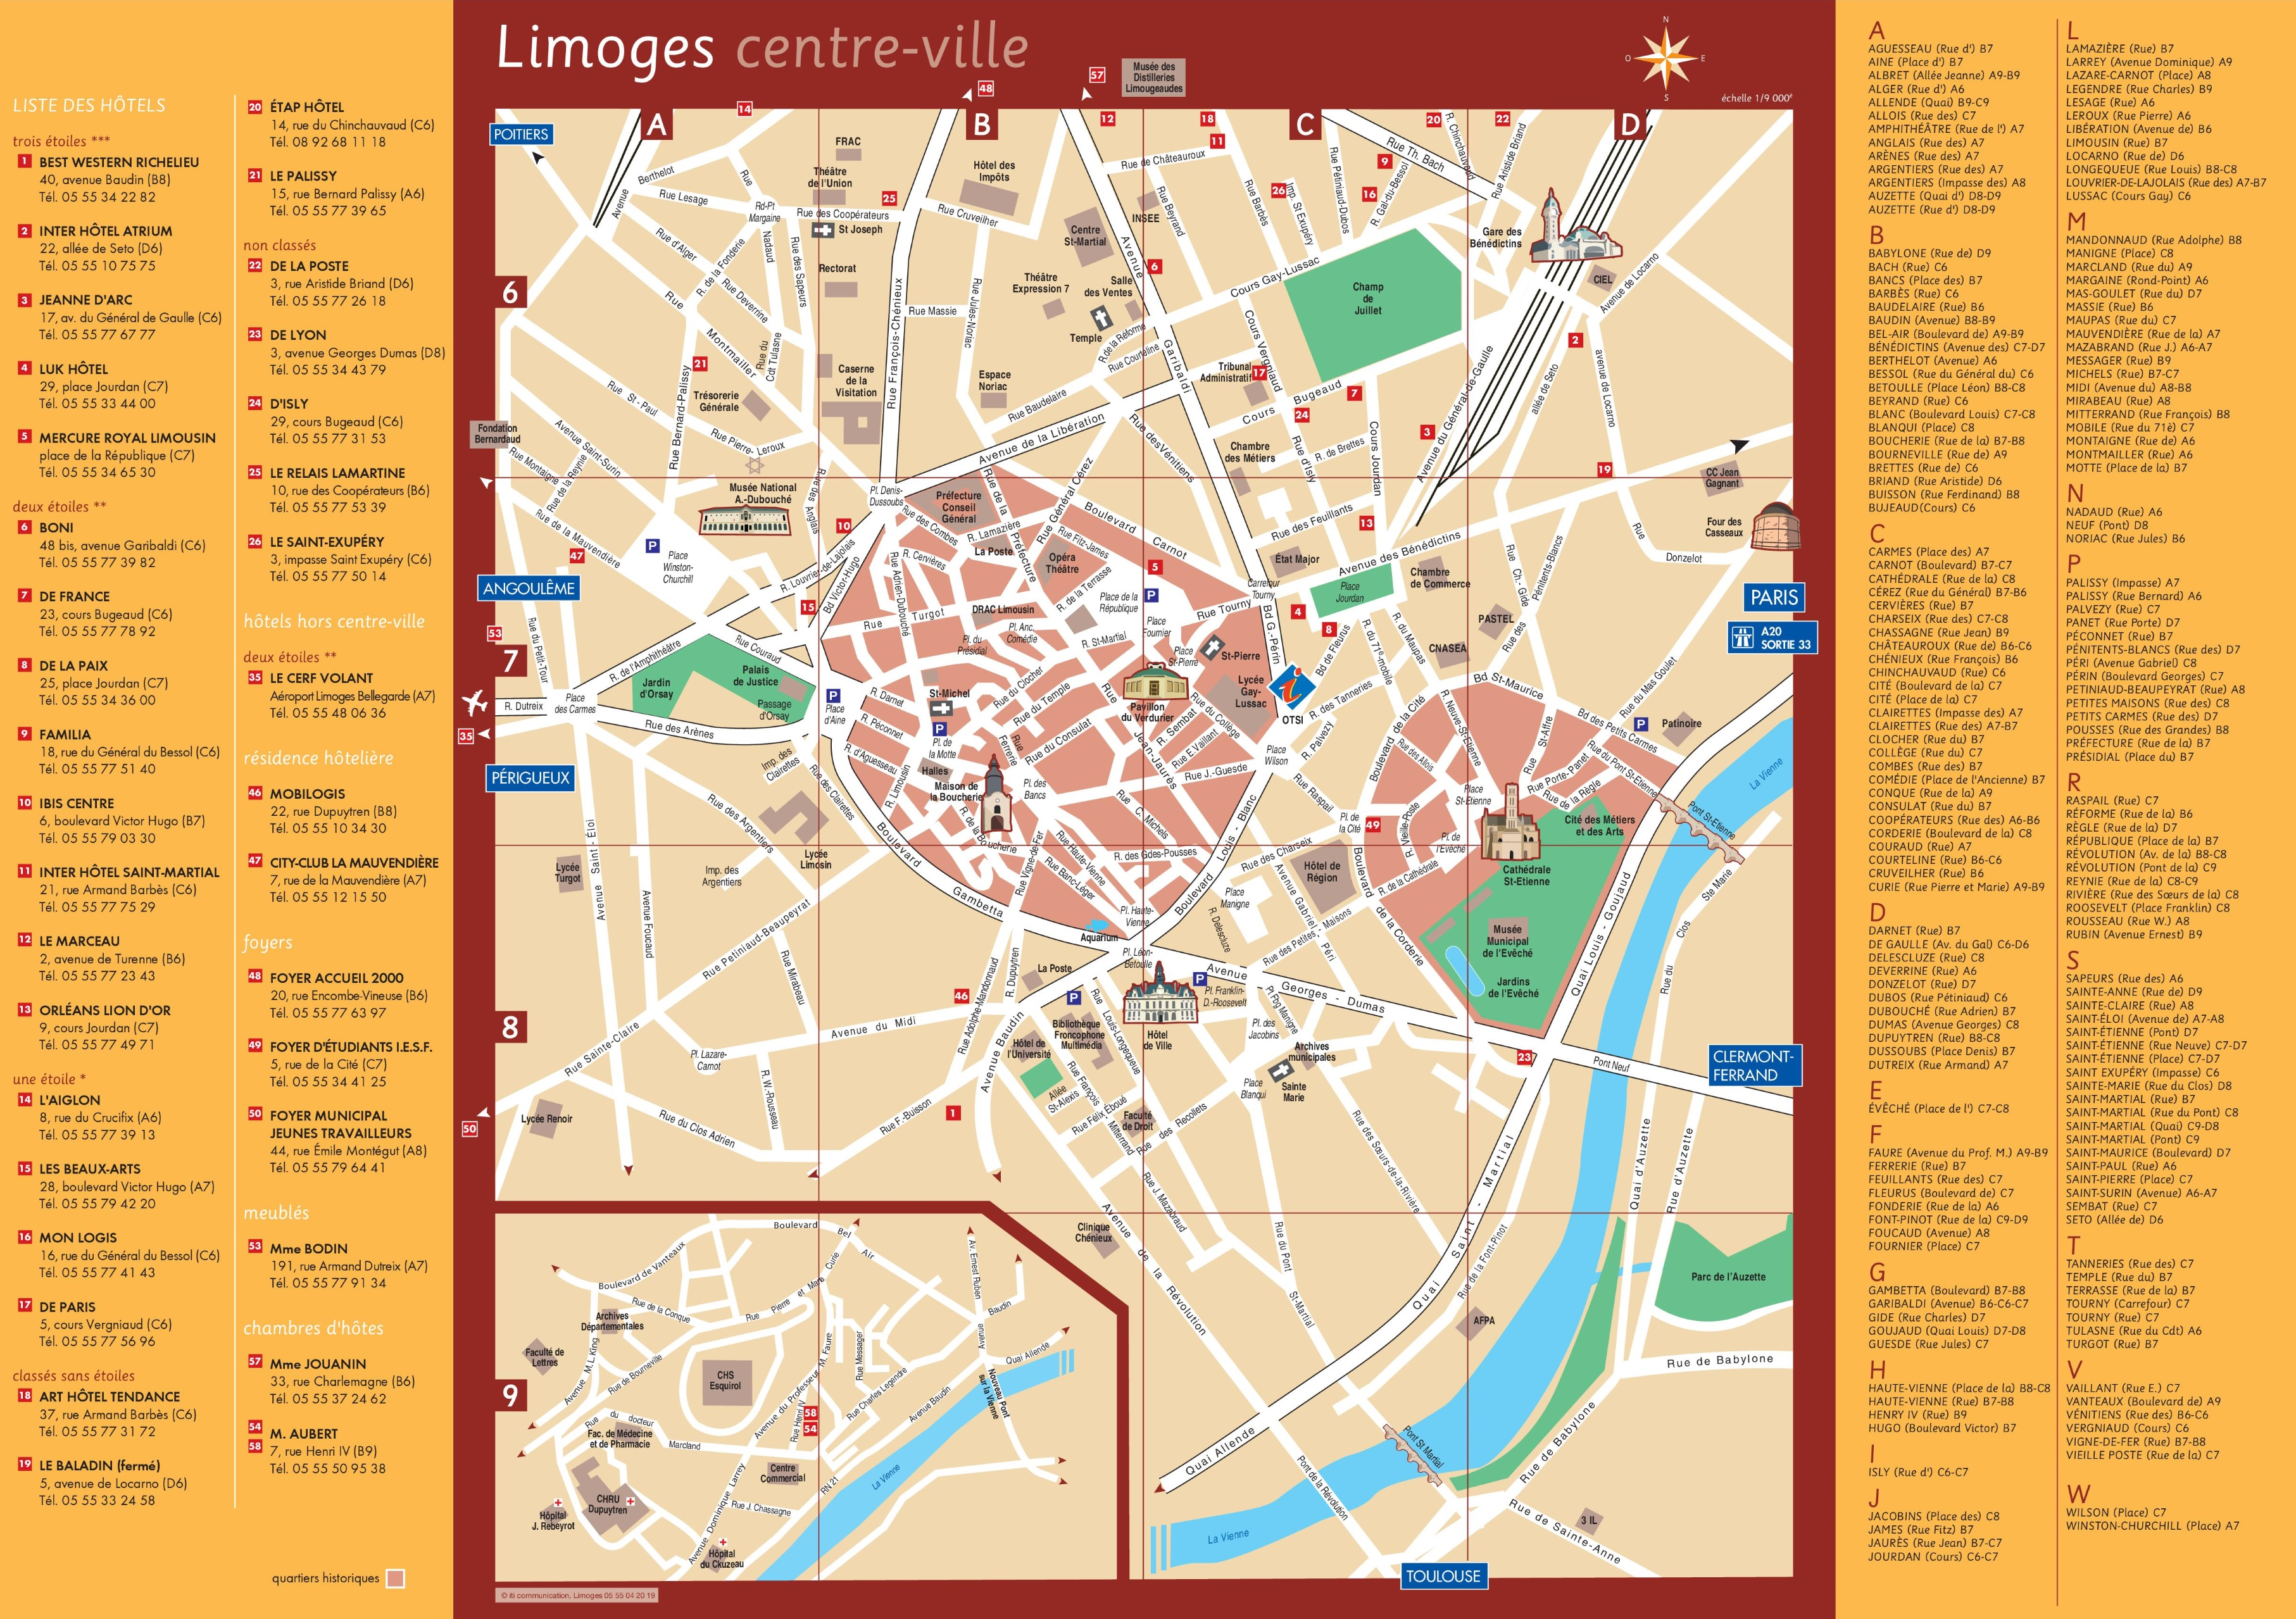 Limoges France Map.Limoges Hotels And Sightseeings Map